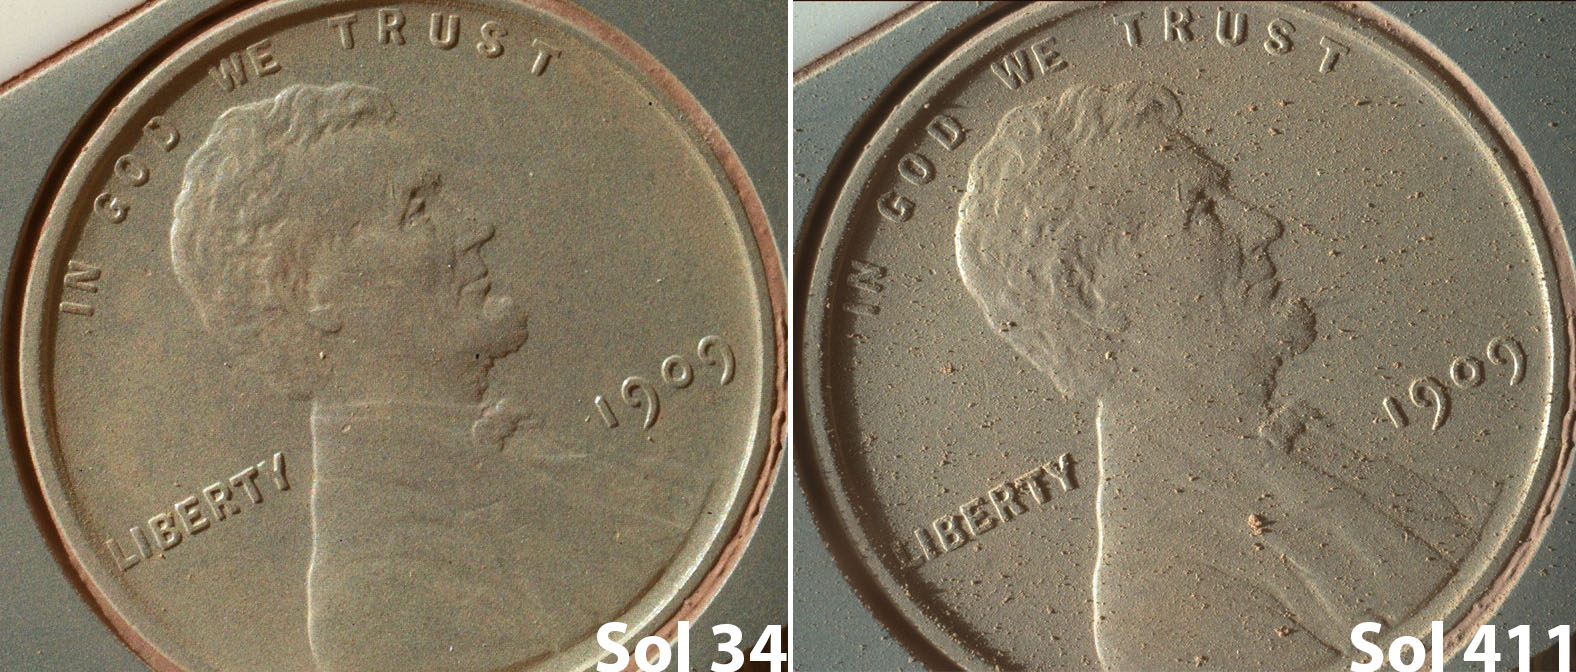 cnn mars rover picture penny - photo #6